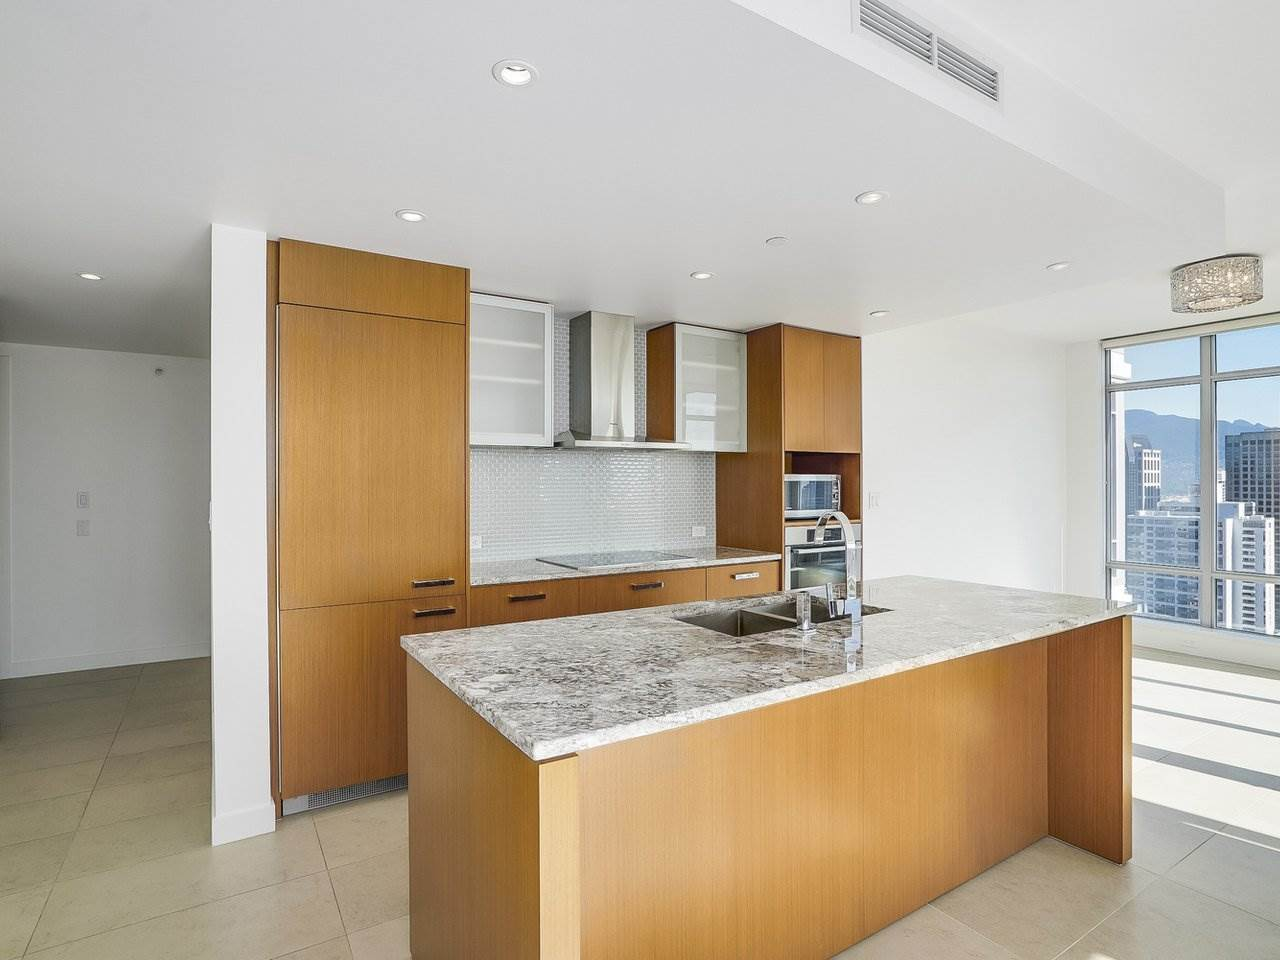 Condo Apartment at 2508 1028 BARCLAY STREET, Unit 2508, Vancouver West, British Columbia. Image 3